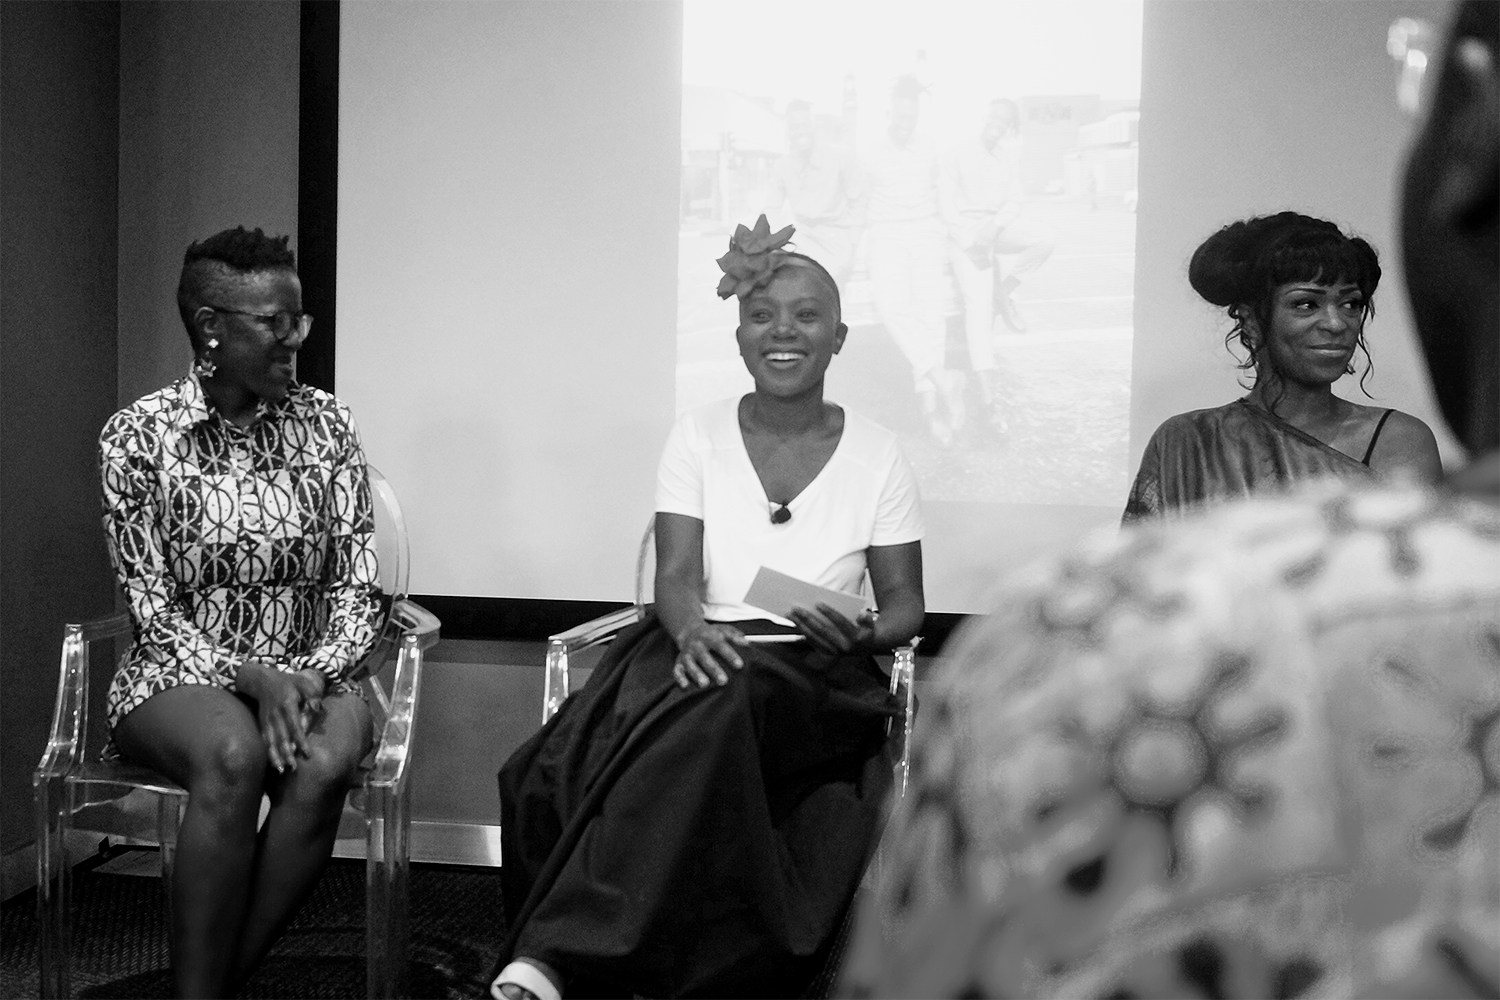 "Writer Milisuthando Bongela beautifully moderates the panel ""Universal Blackness: The Black Diaspora Experience in the 21st Century presented by ARTNOIR"" with artists Nontsikelelo Mutiti (left) and Lina Iris Viktor (right)"